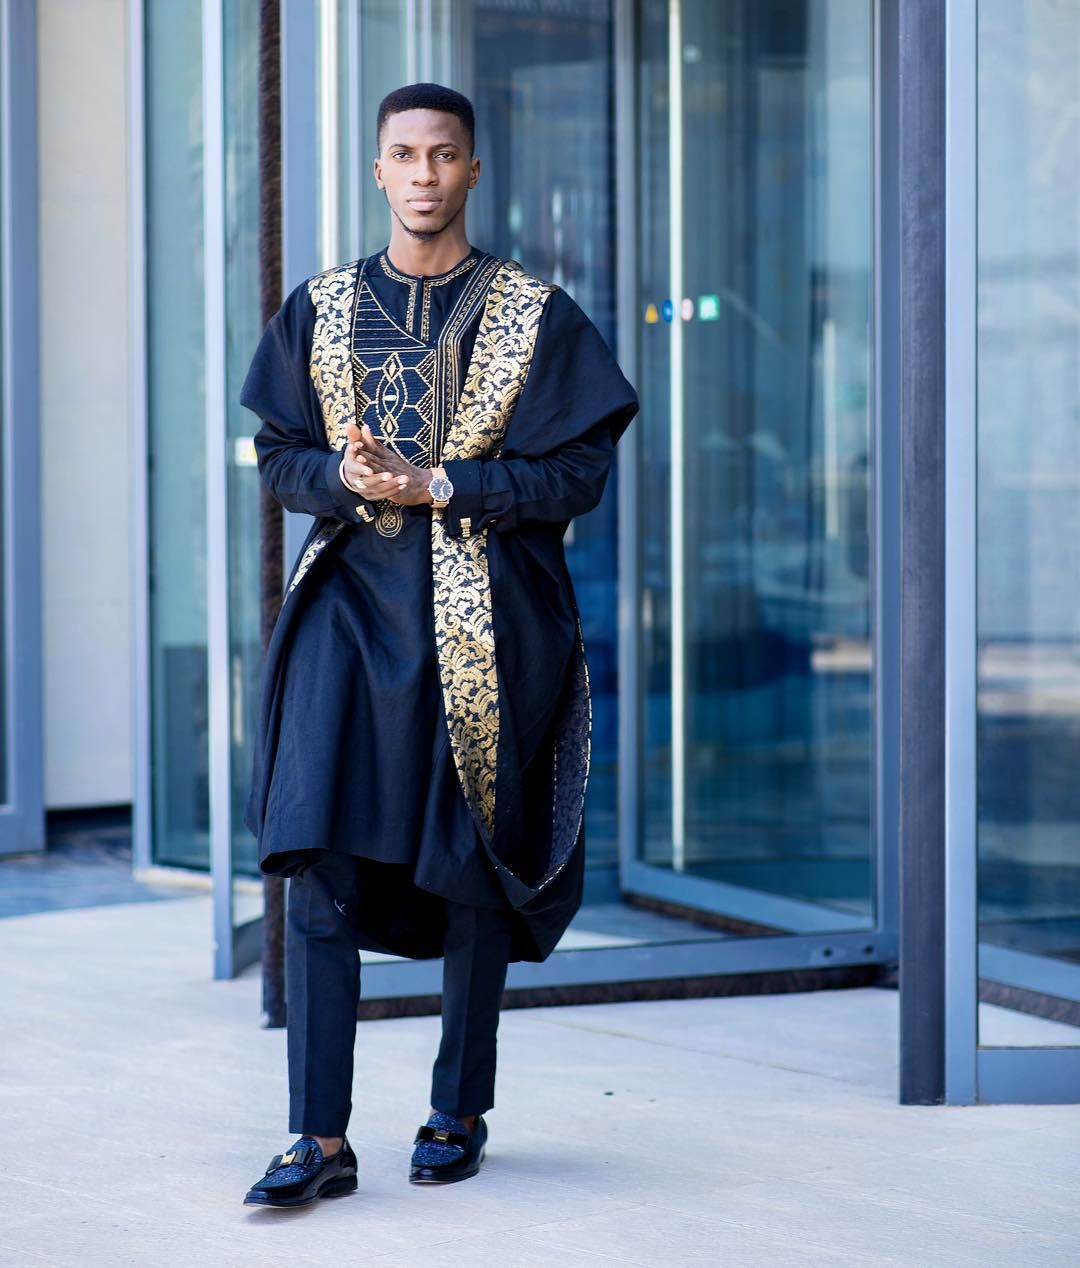 859c18ace4164 Black x Gold. What if T'challa was actually Yoruba? The African ...